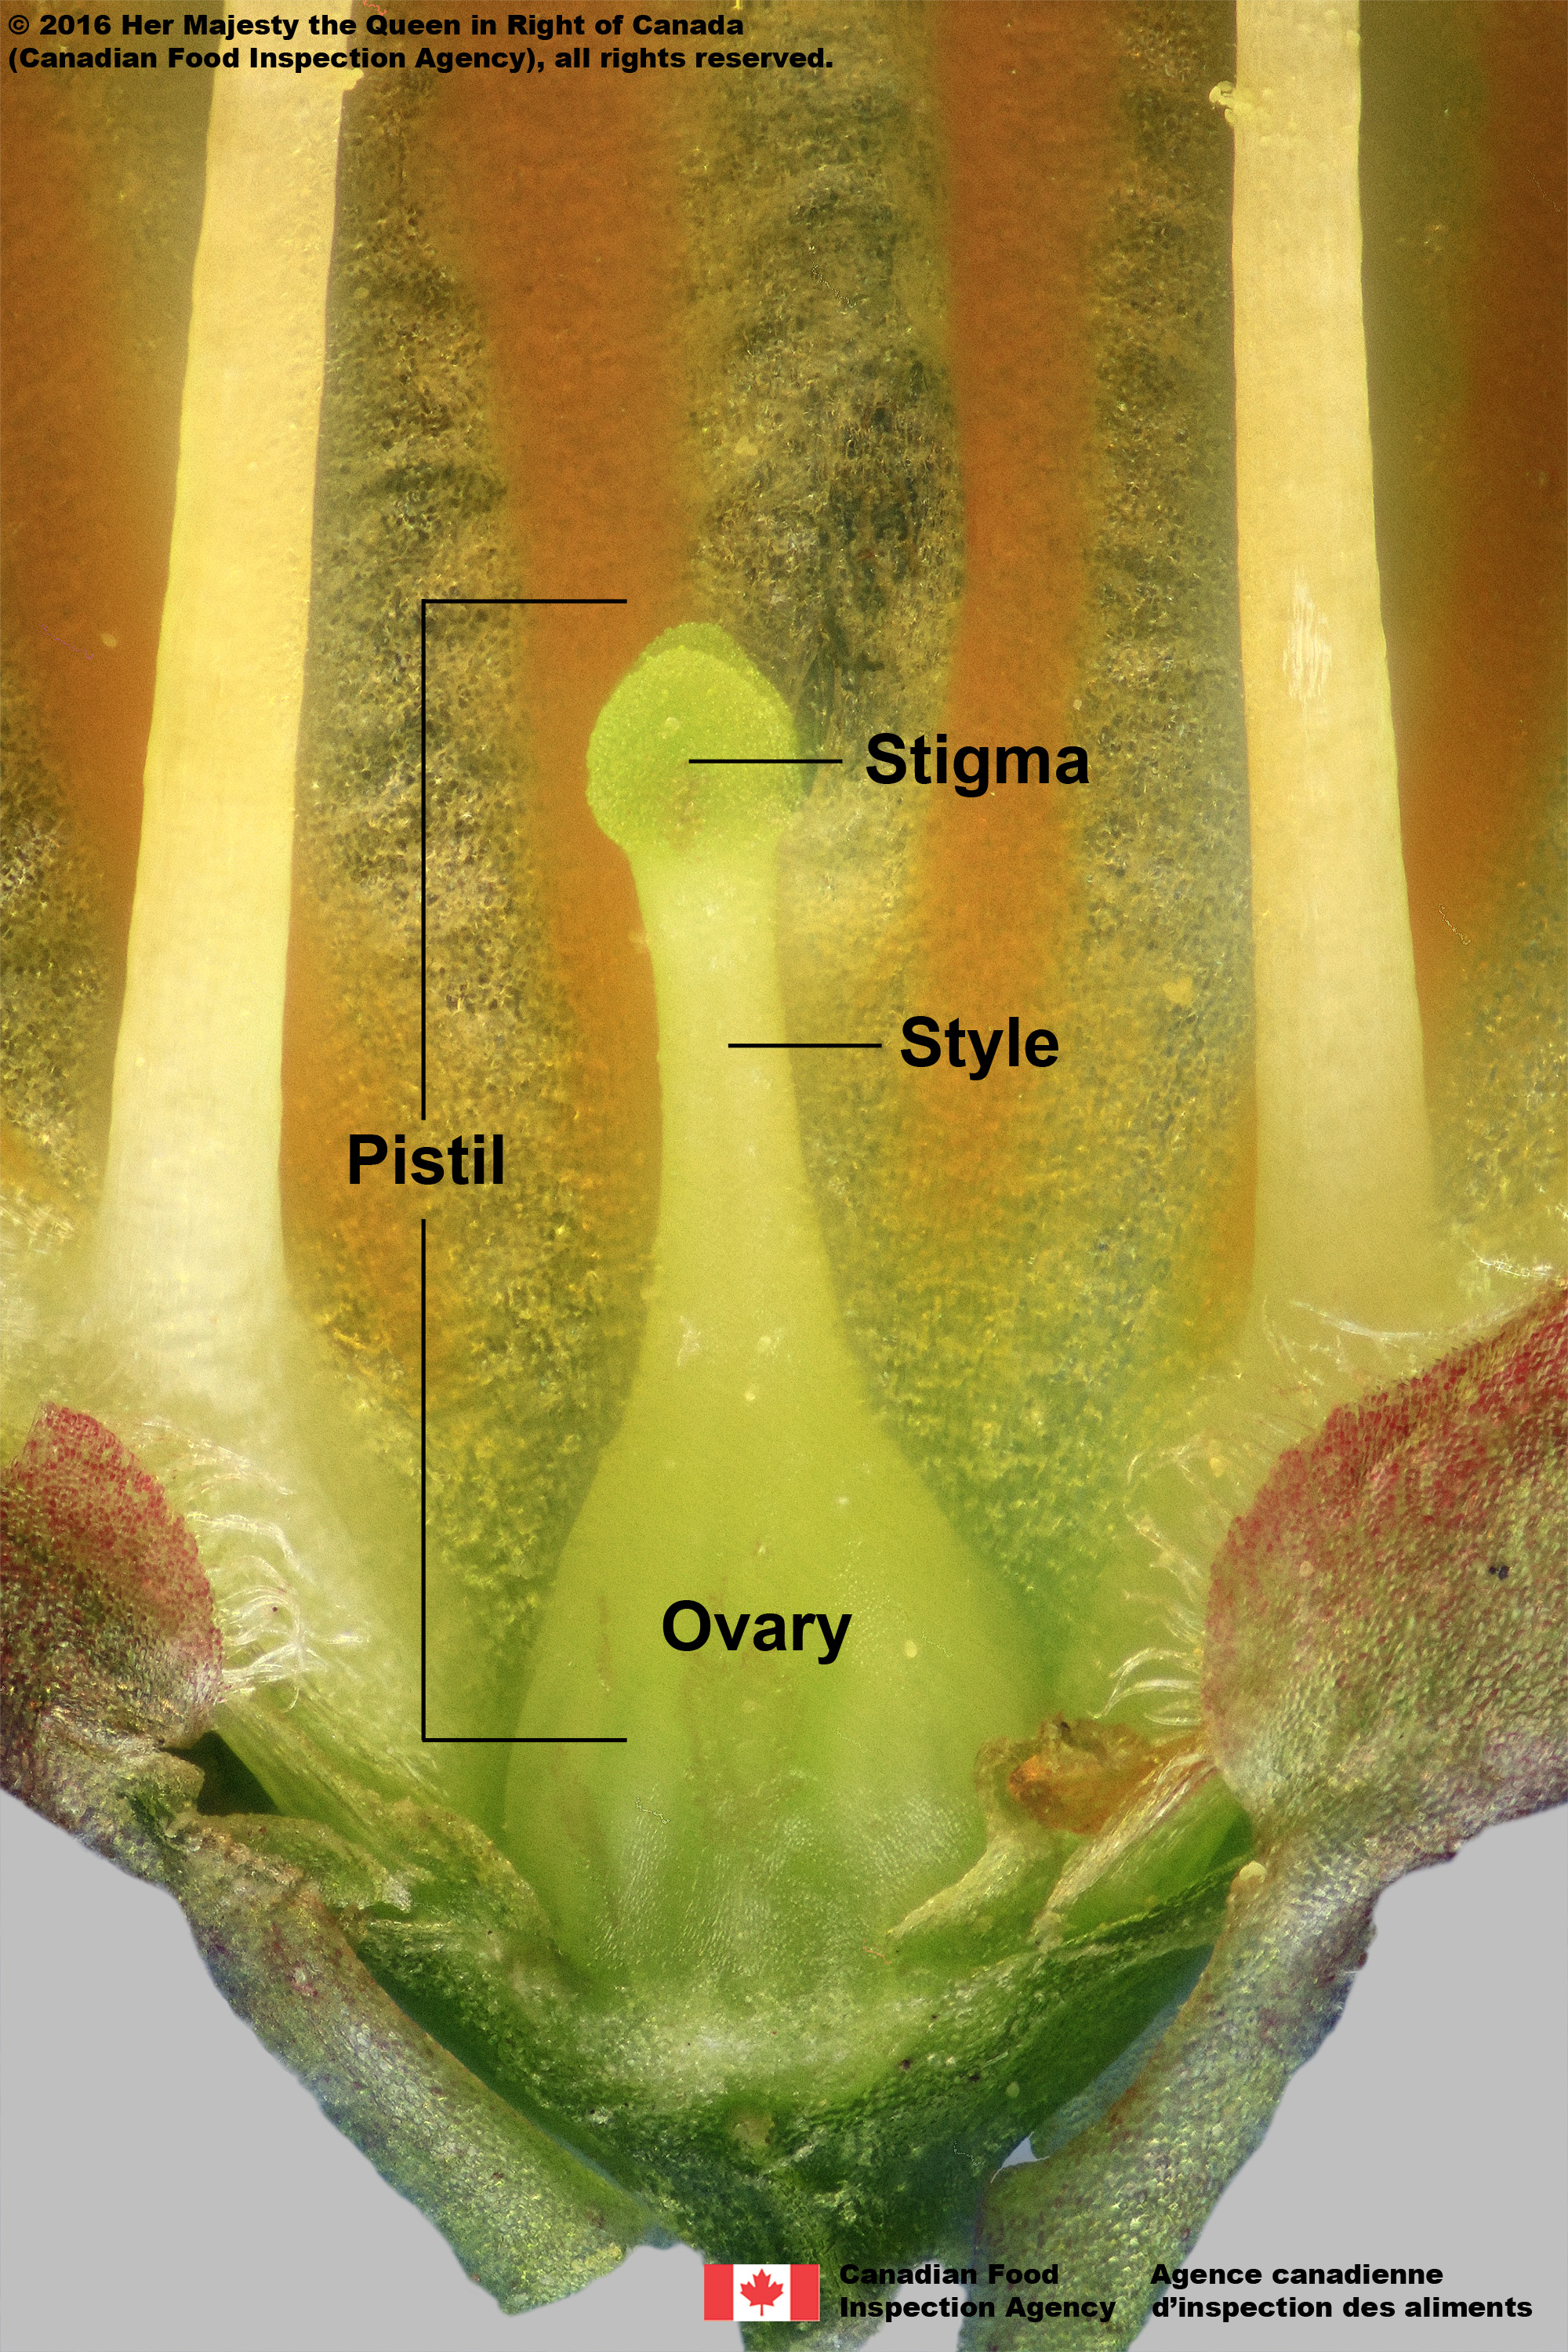 style_and_ovary_annotated1_PISTIL_LEFT2.jpg